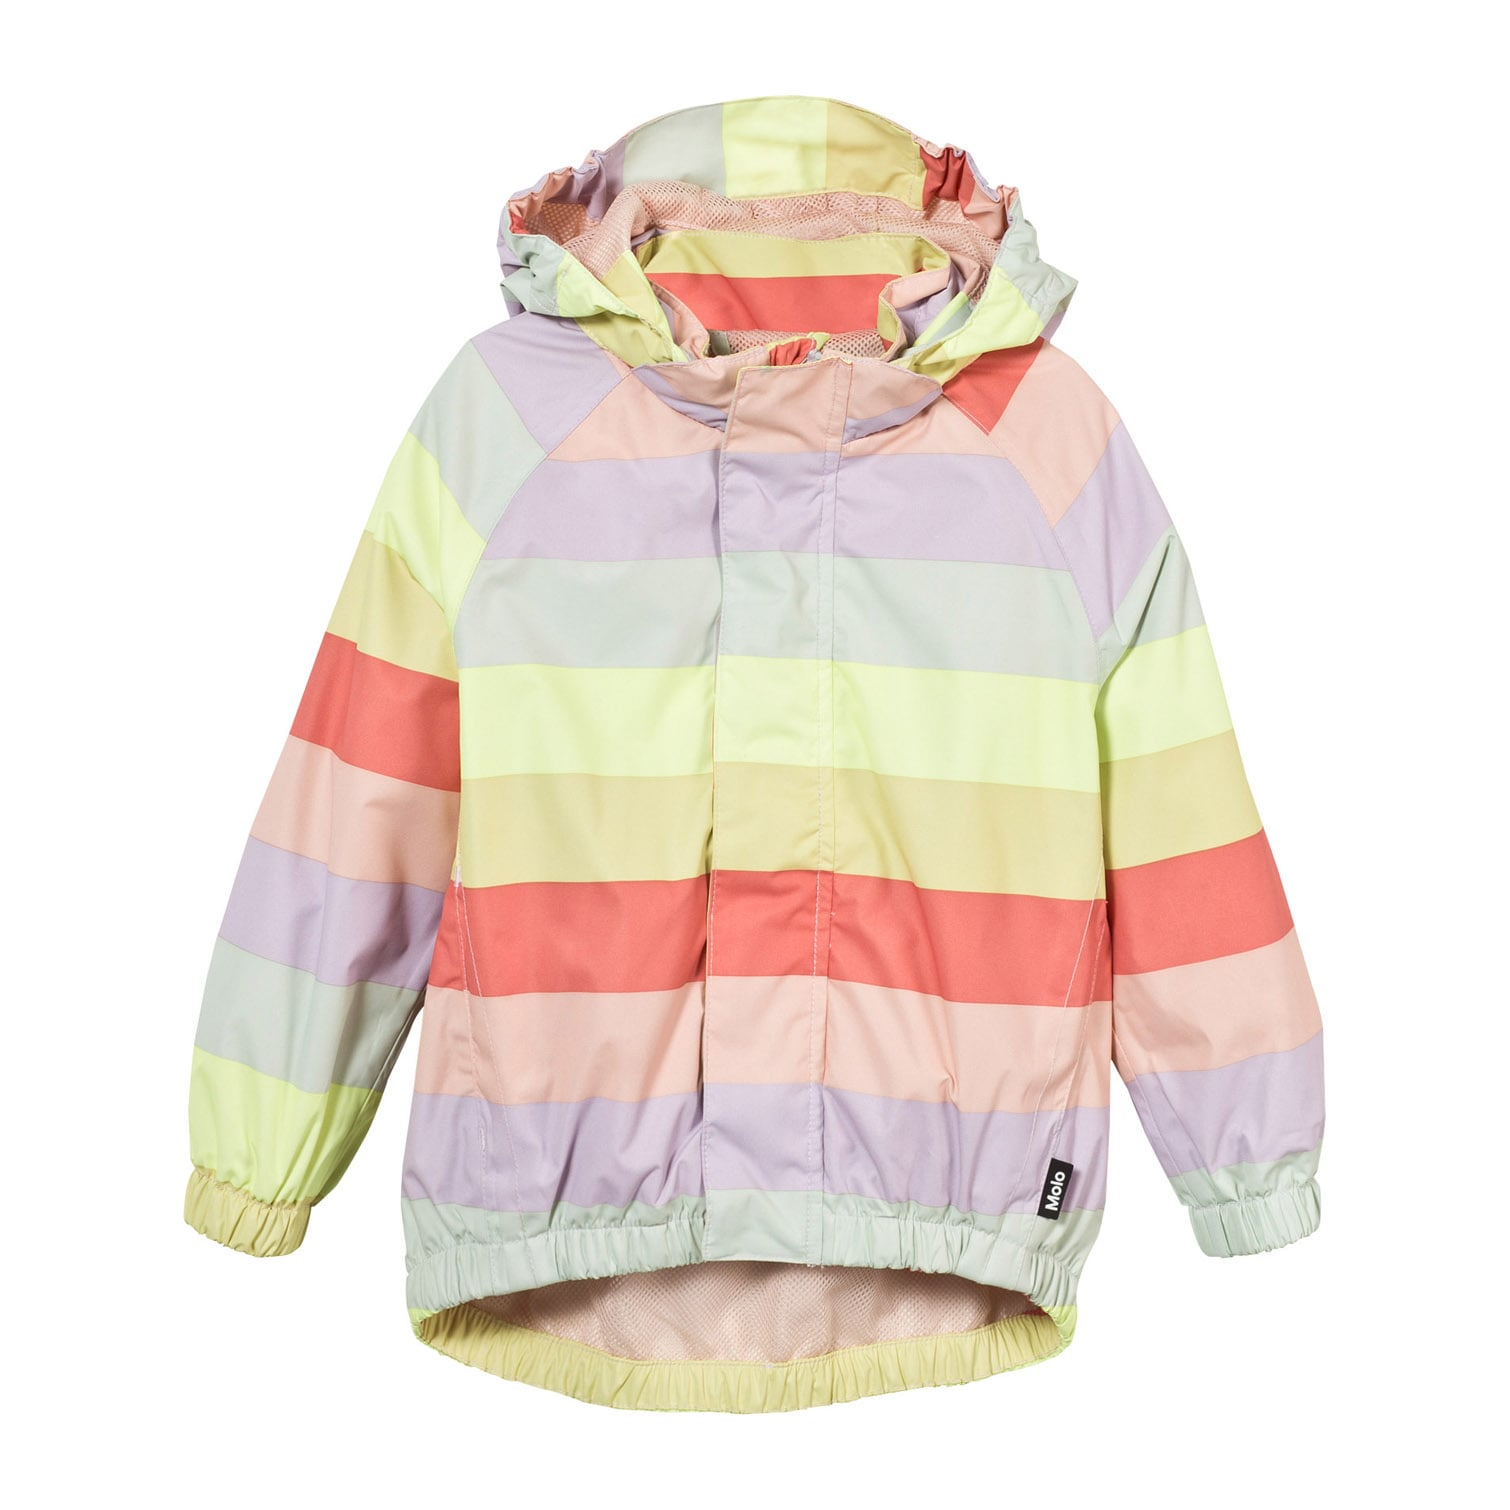 wide selection best value a great variety of models Molo Rainbow Waiton Rain Jacket | 11 Cute Raincoats That ...